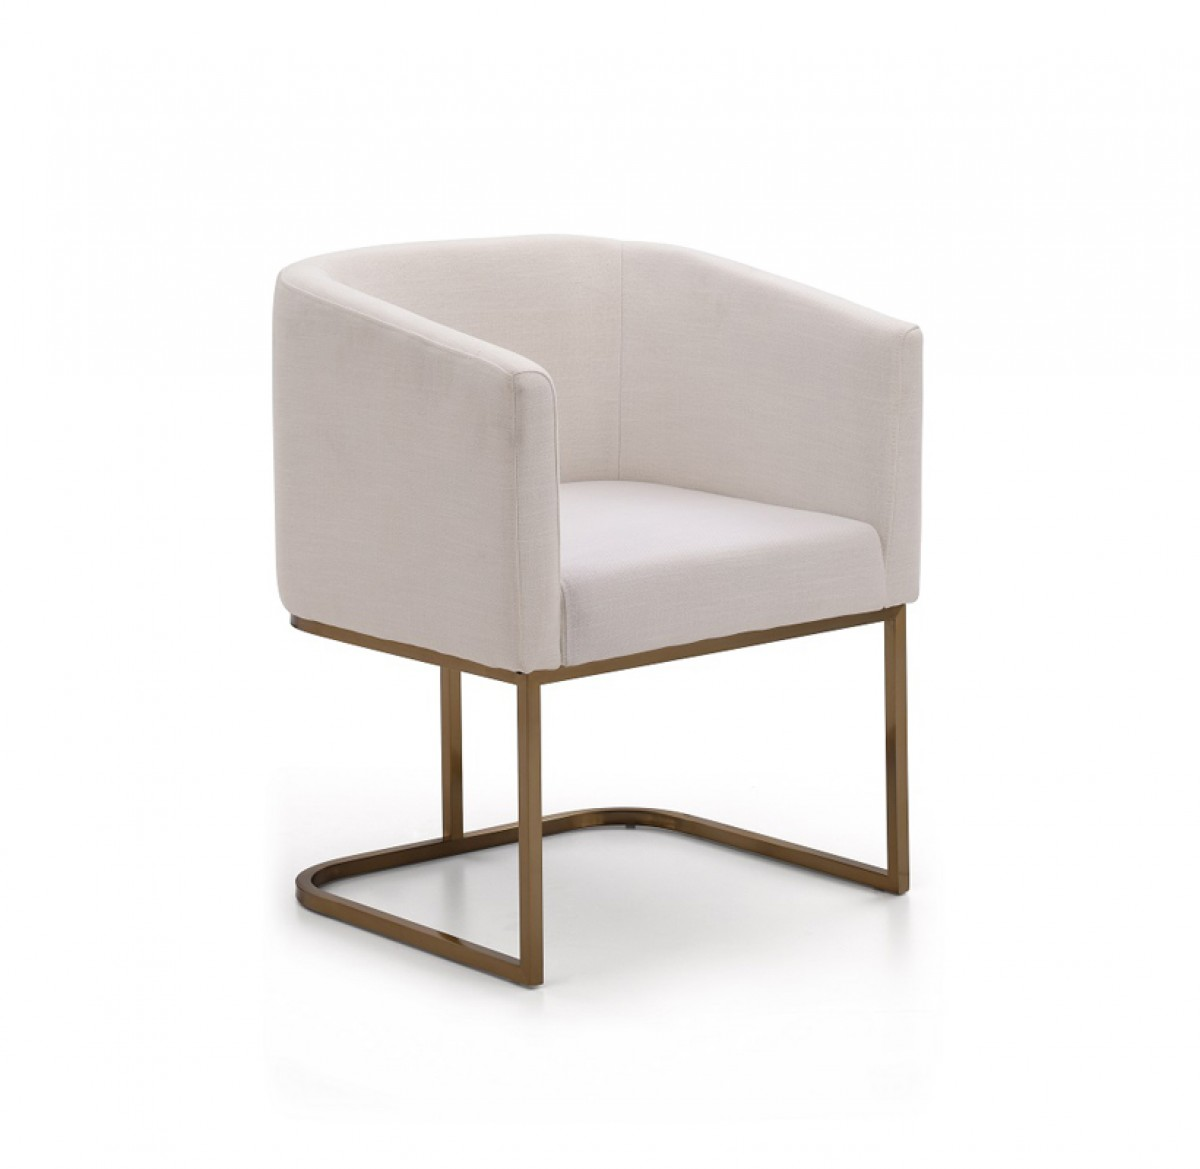 Contemporary Modern Dining Chairs: Modrest Yukon Modern White Fabric And Antique Brass Dining